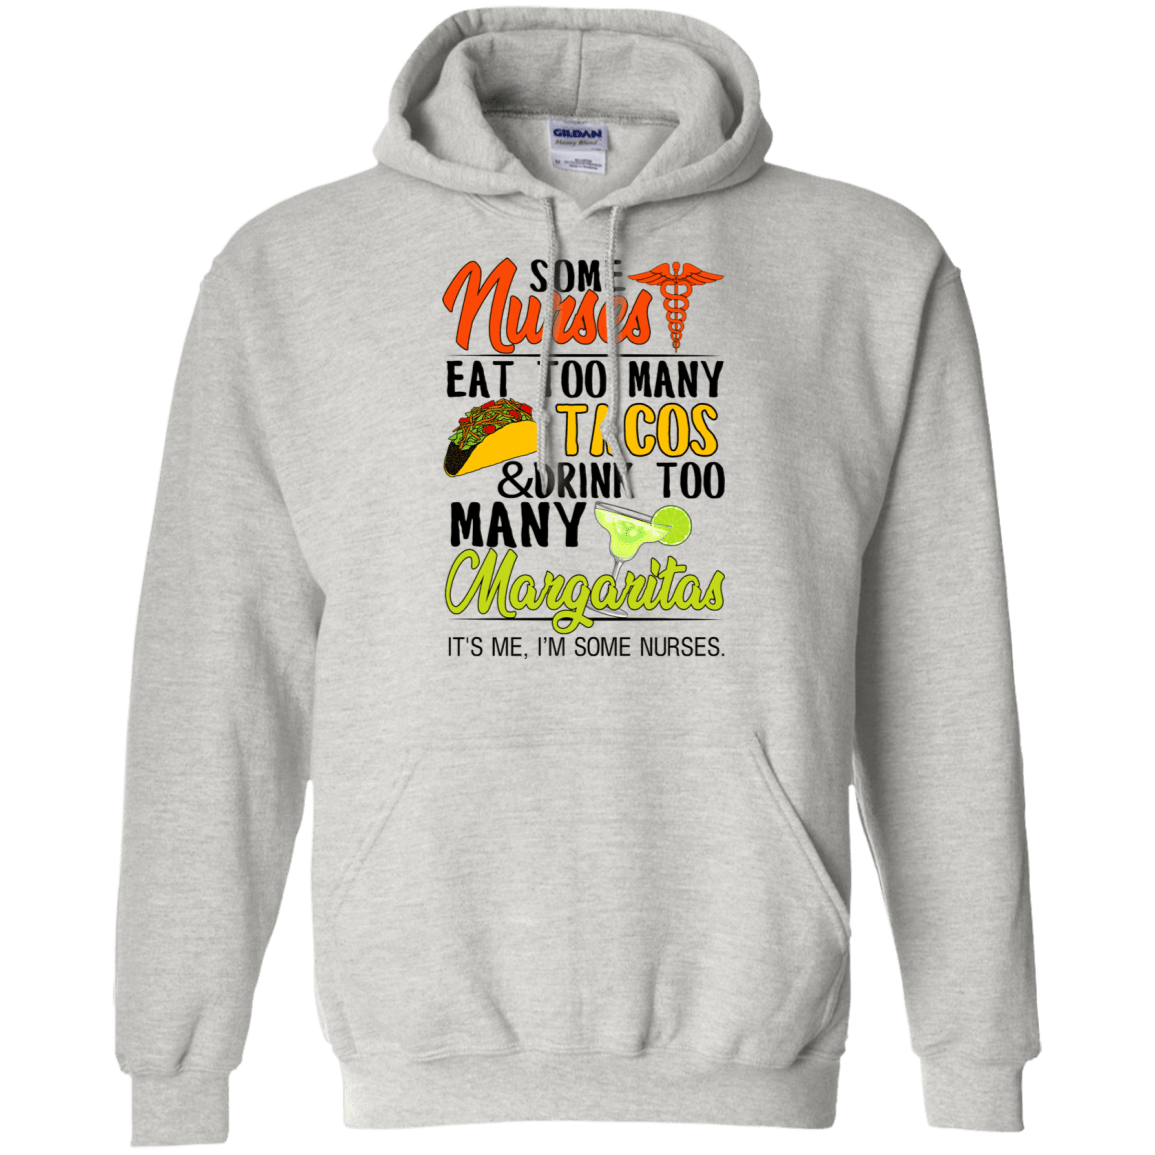 Some Nurses Eat Too Many Tacos & Drink Too Many Margaritas It's Me I'm Some Nurses T-Shirts & Hoodies 541-4748-76452266-23071 - Tee Ript